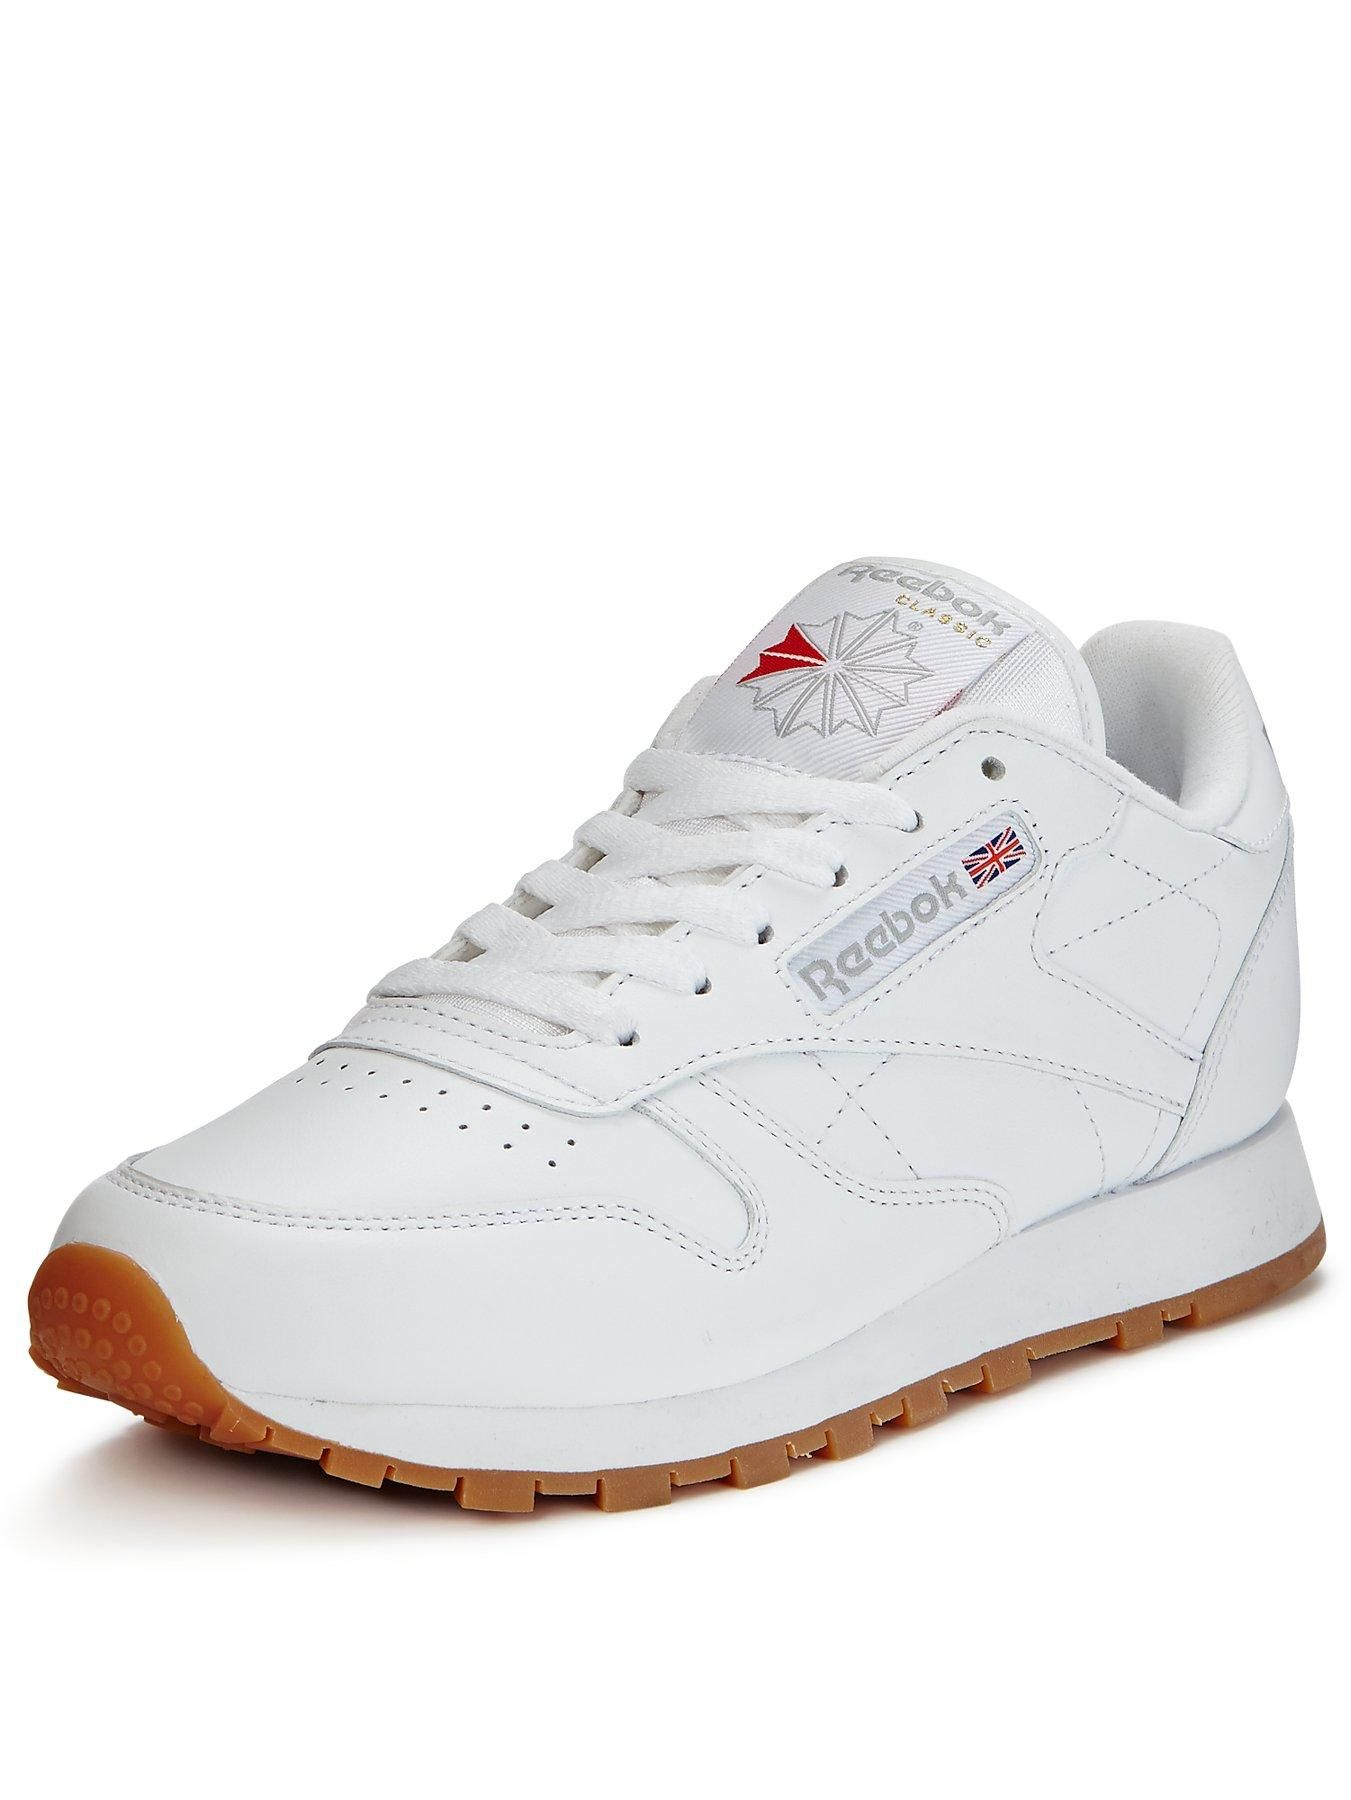 c4a7681d5cc Reebok Classic Leather Trainers – WhiteA vintage-inspired take on the  Reebok Classic